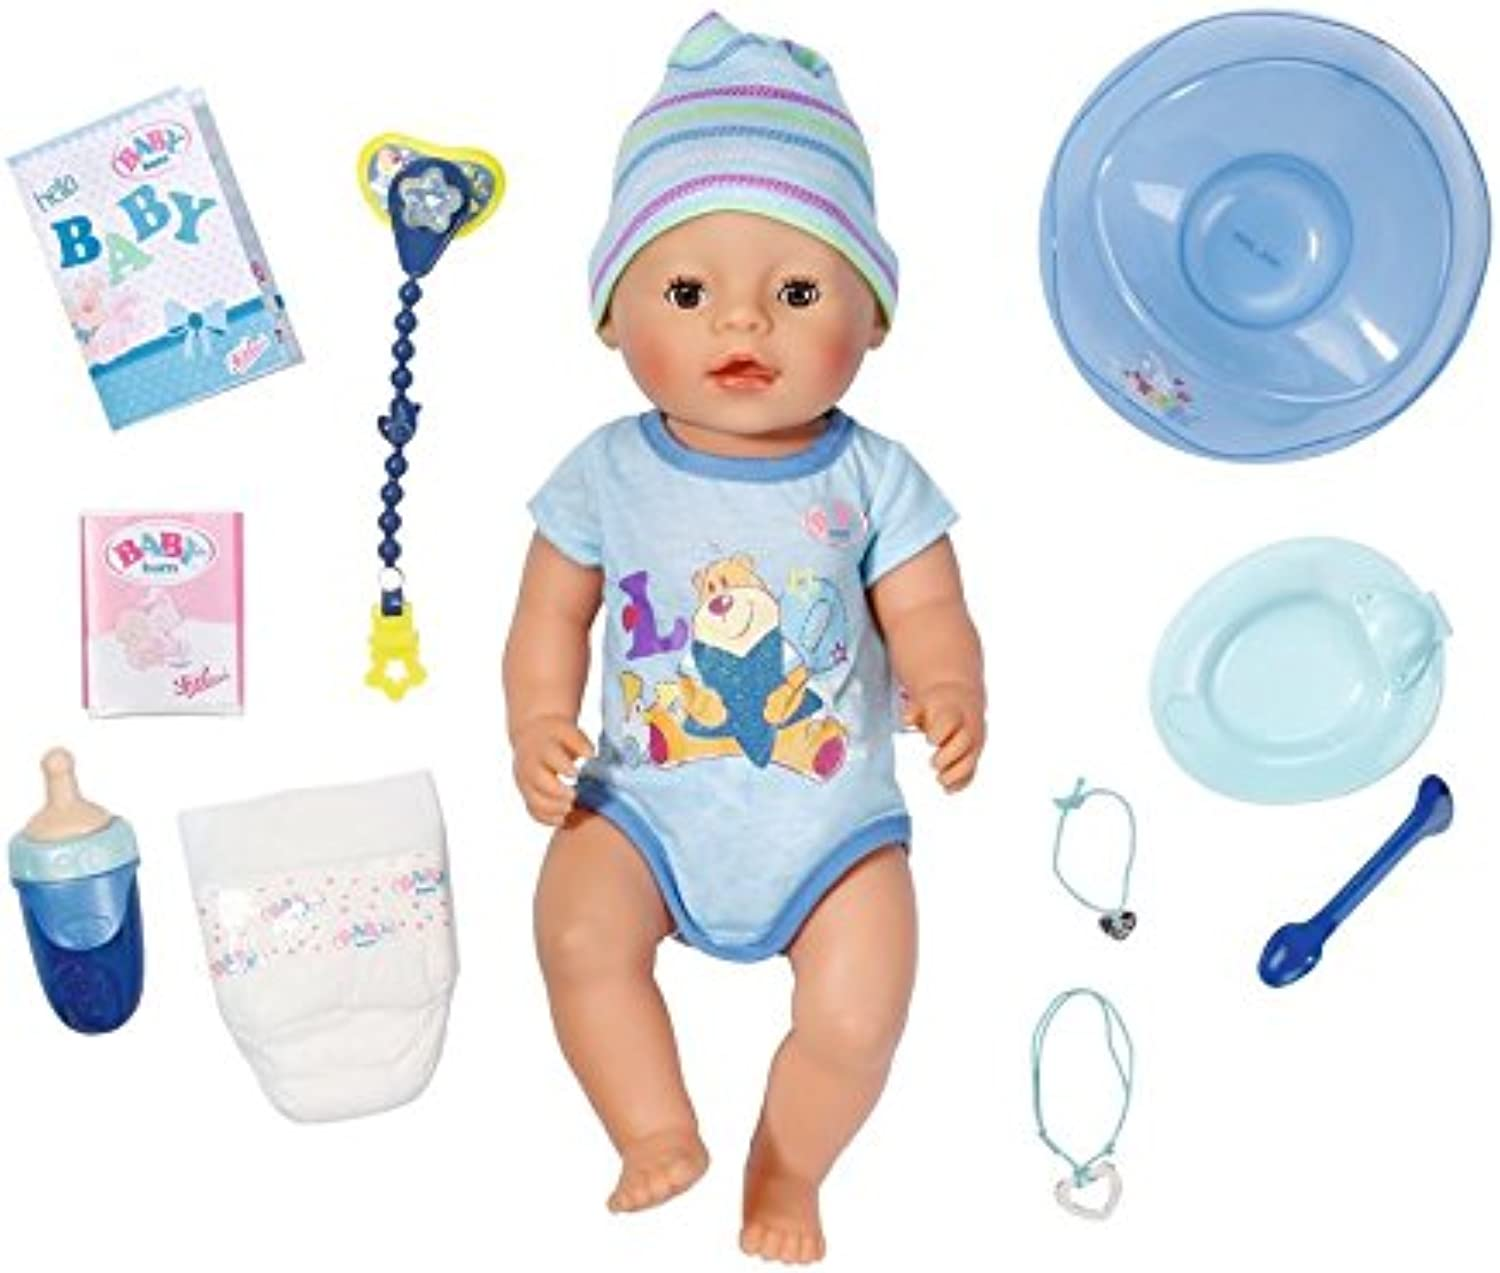 New BABY Born Interactive Boy Doll